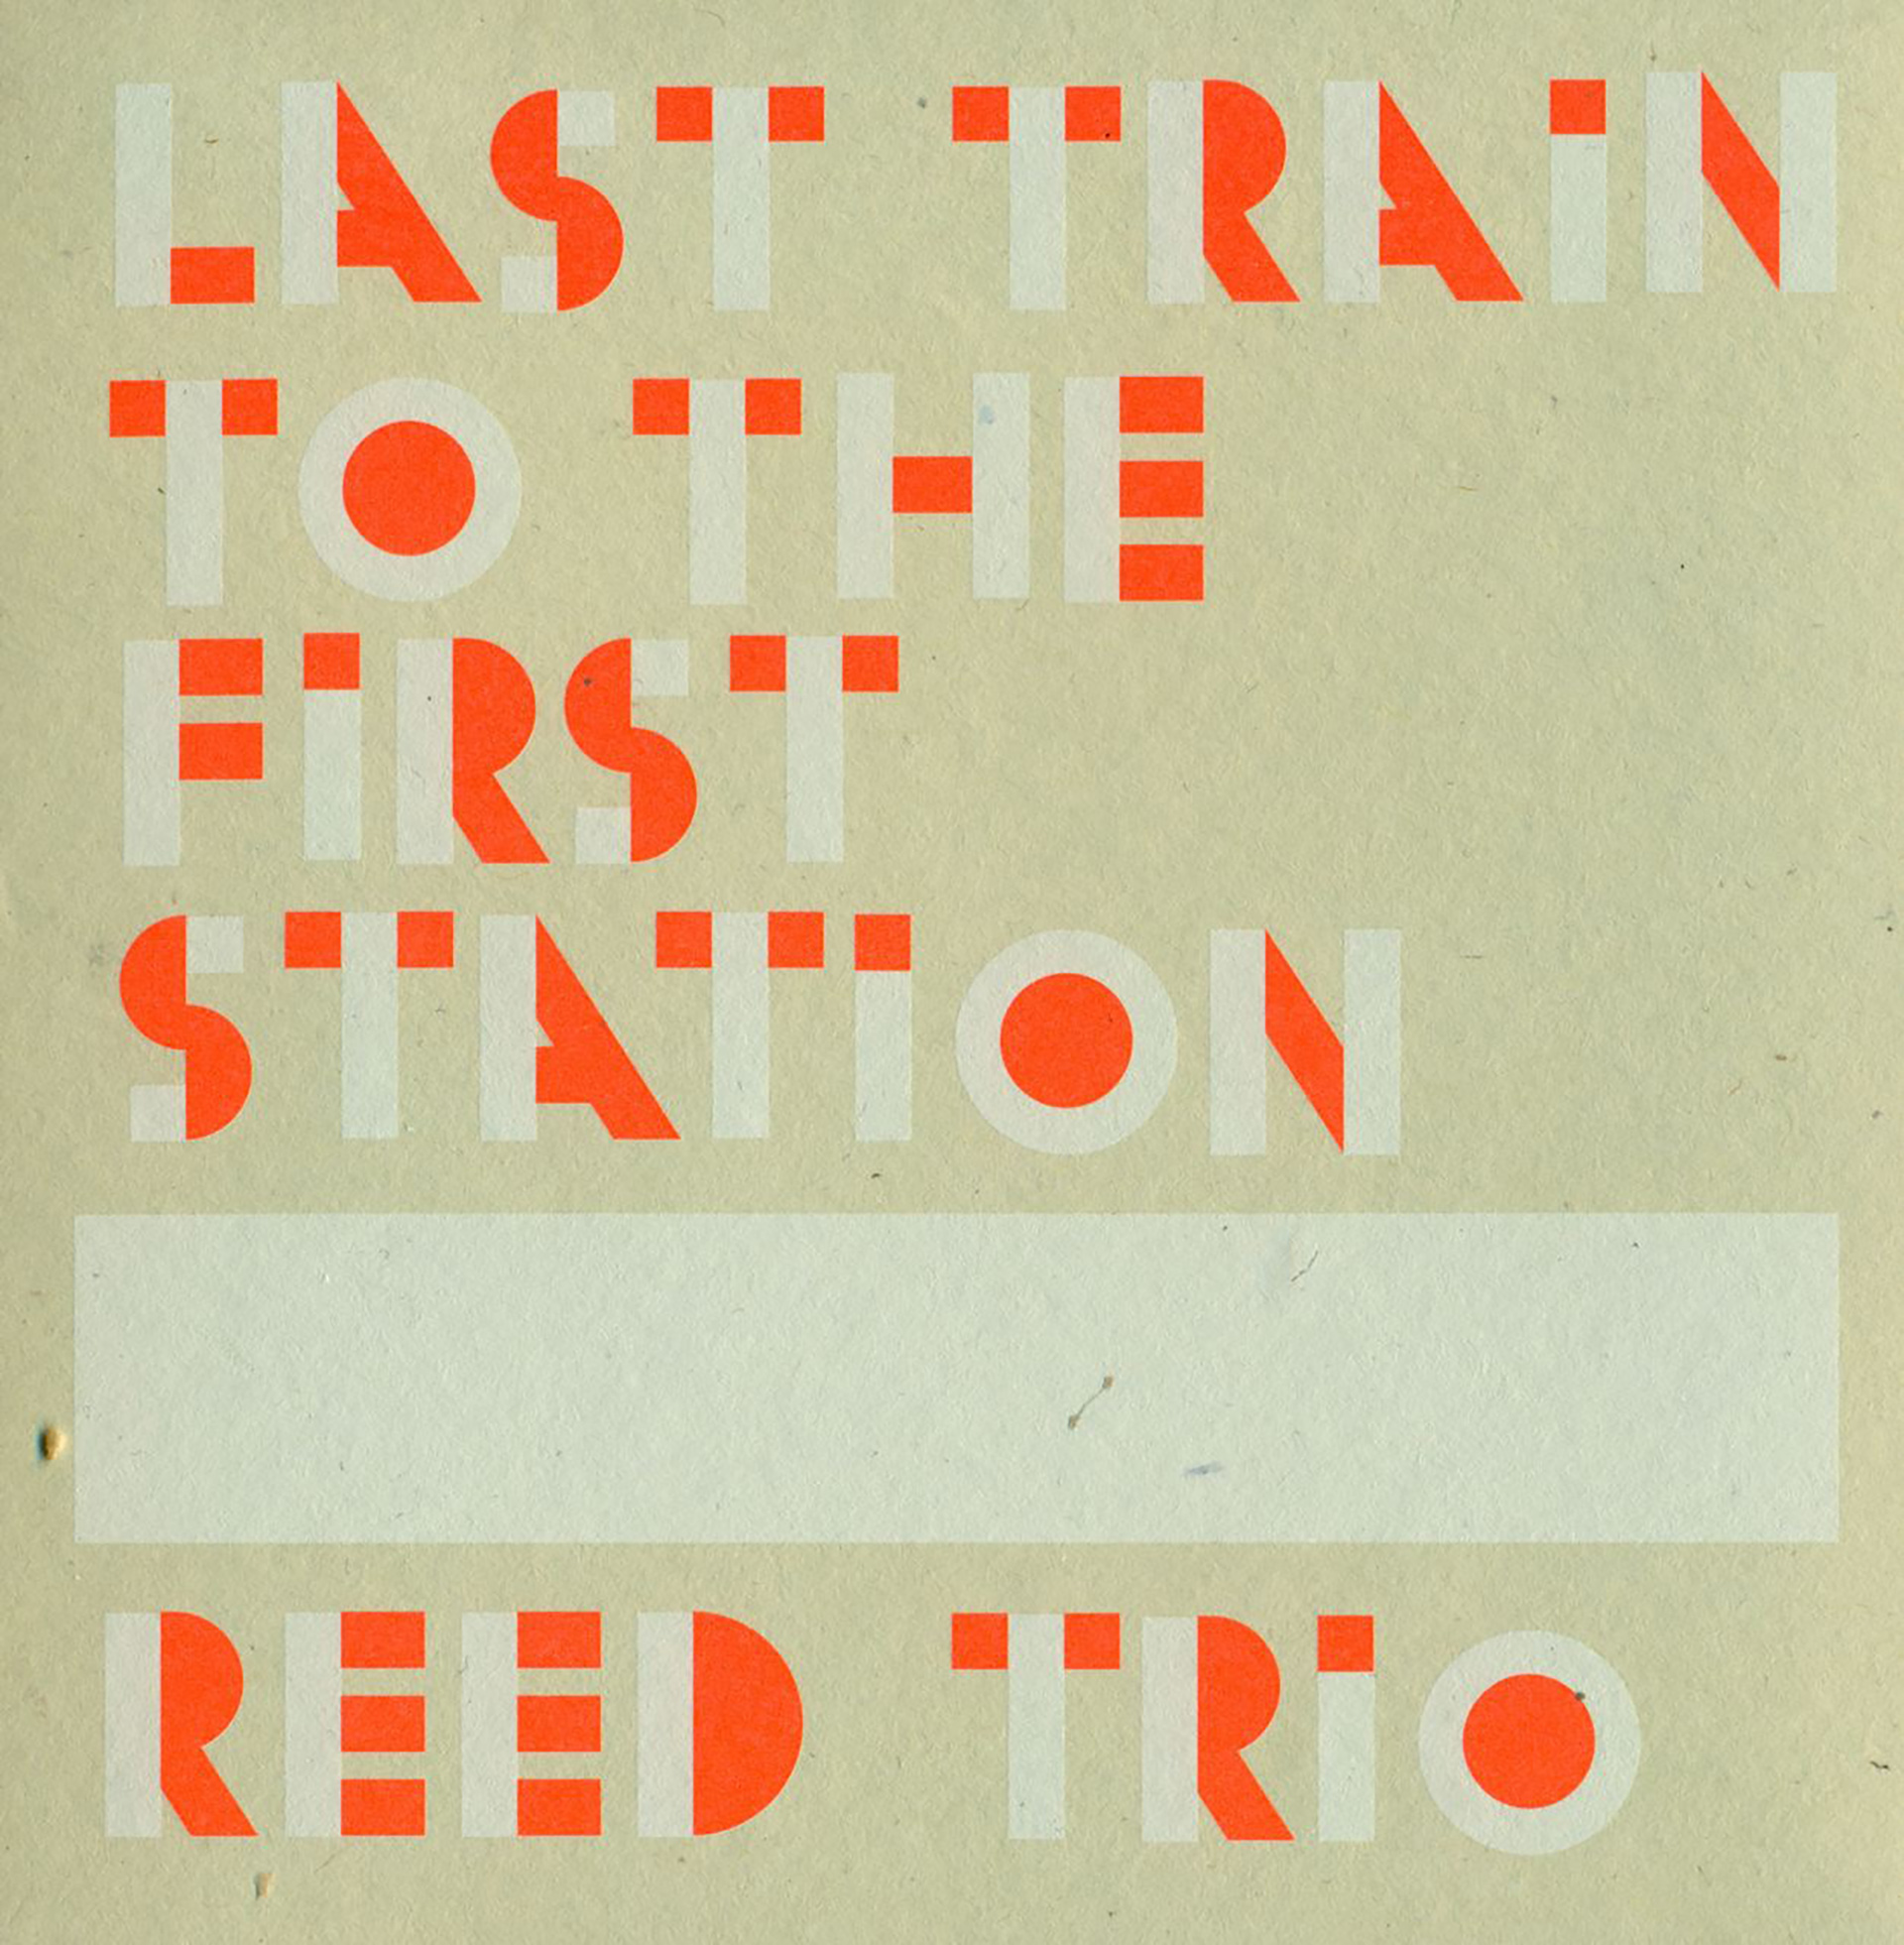 REED TRIO – LAST TRAIN TO THE FIRST STATION